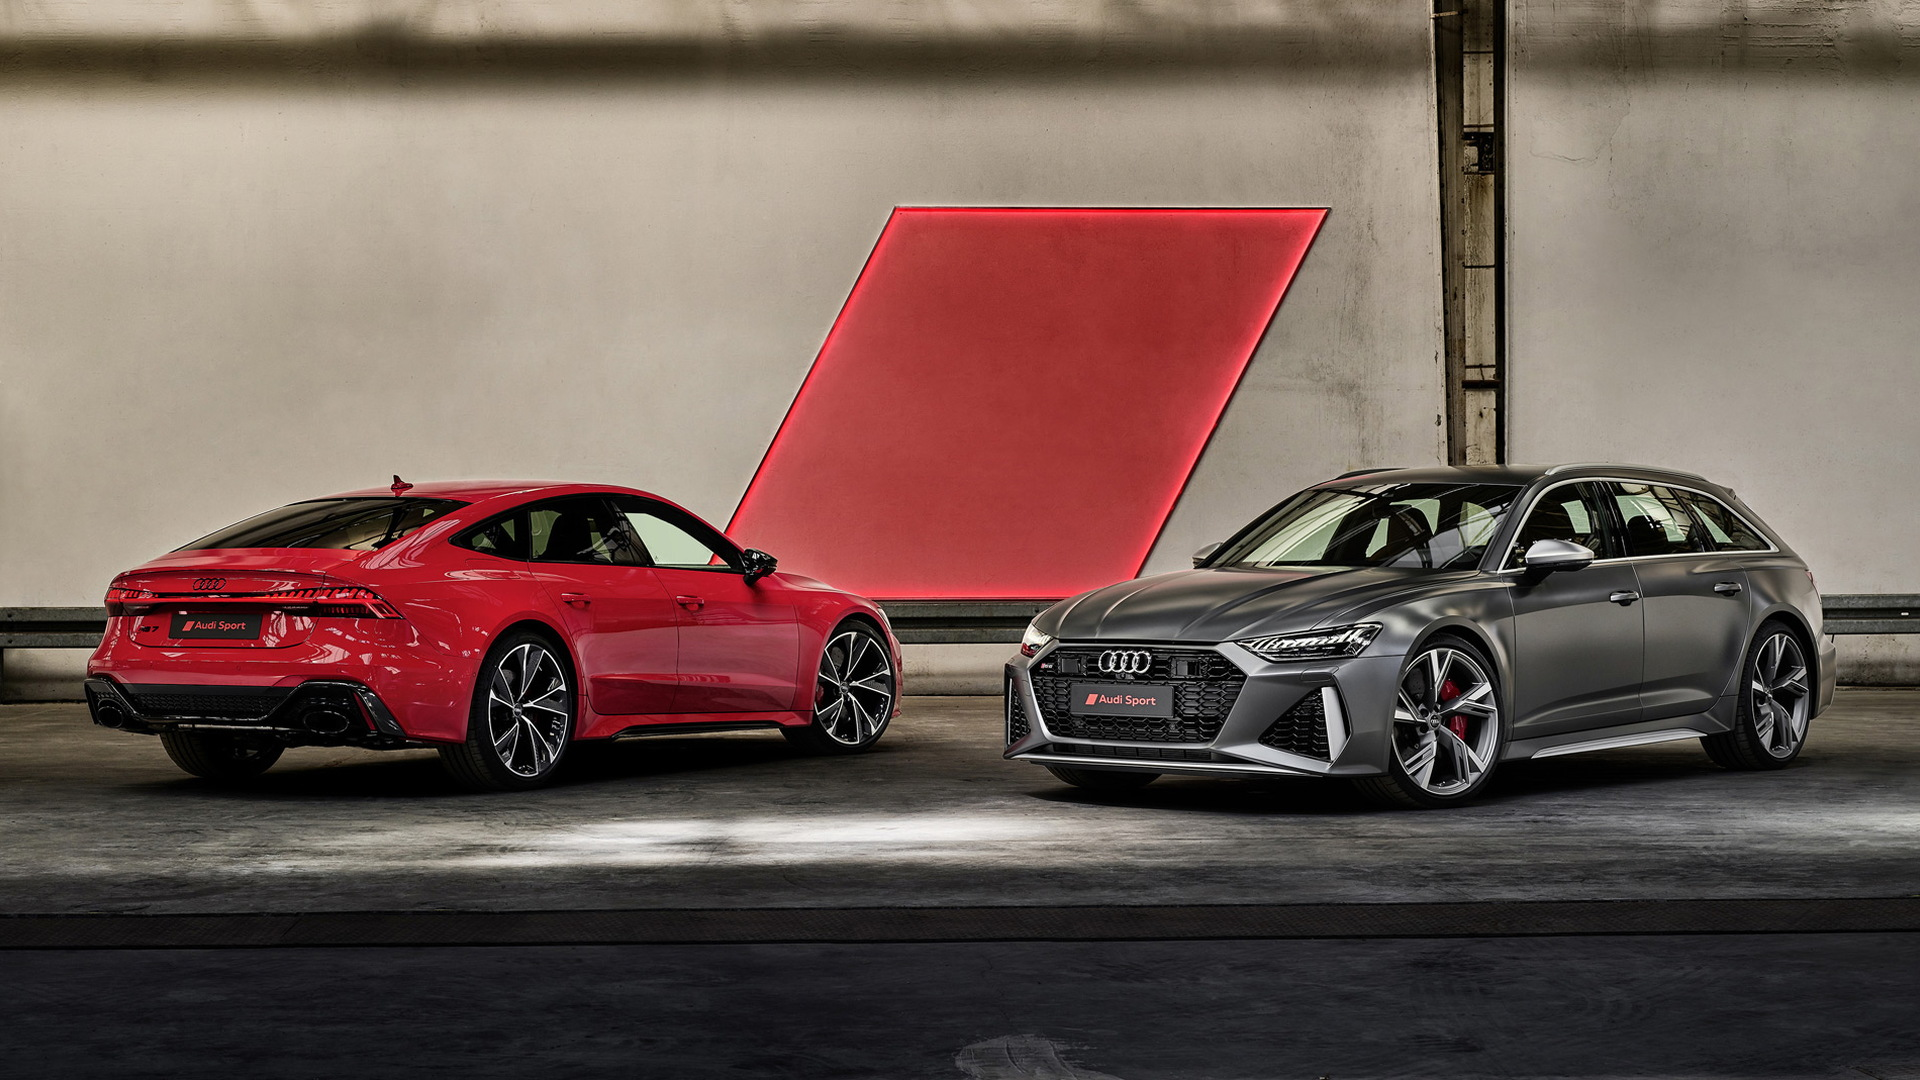 New Audi RS 7 Sportback and RS 6 Avant